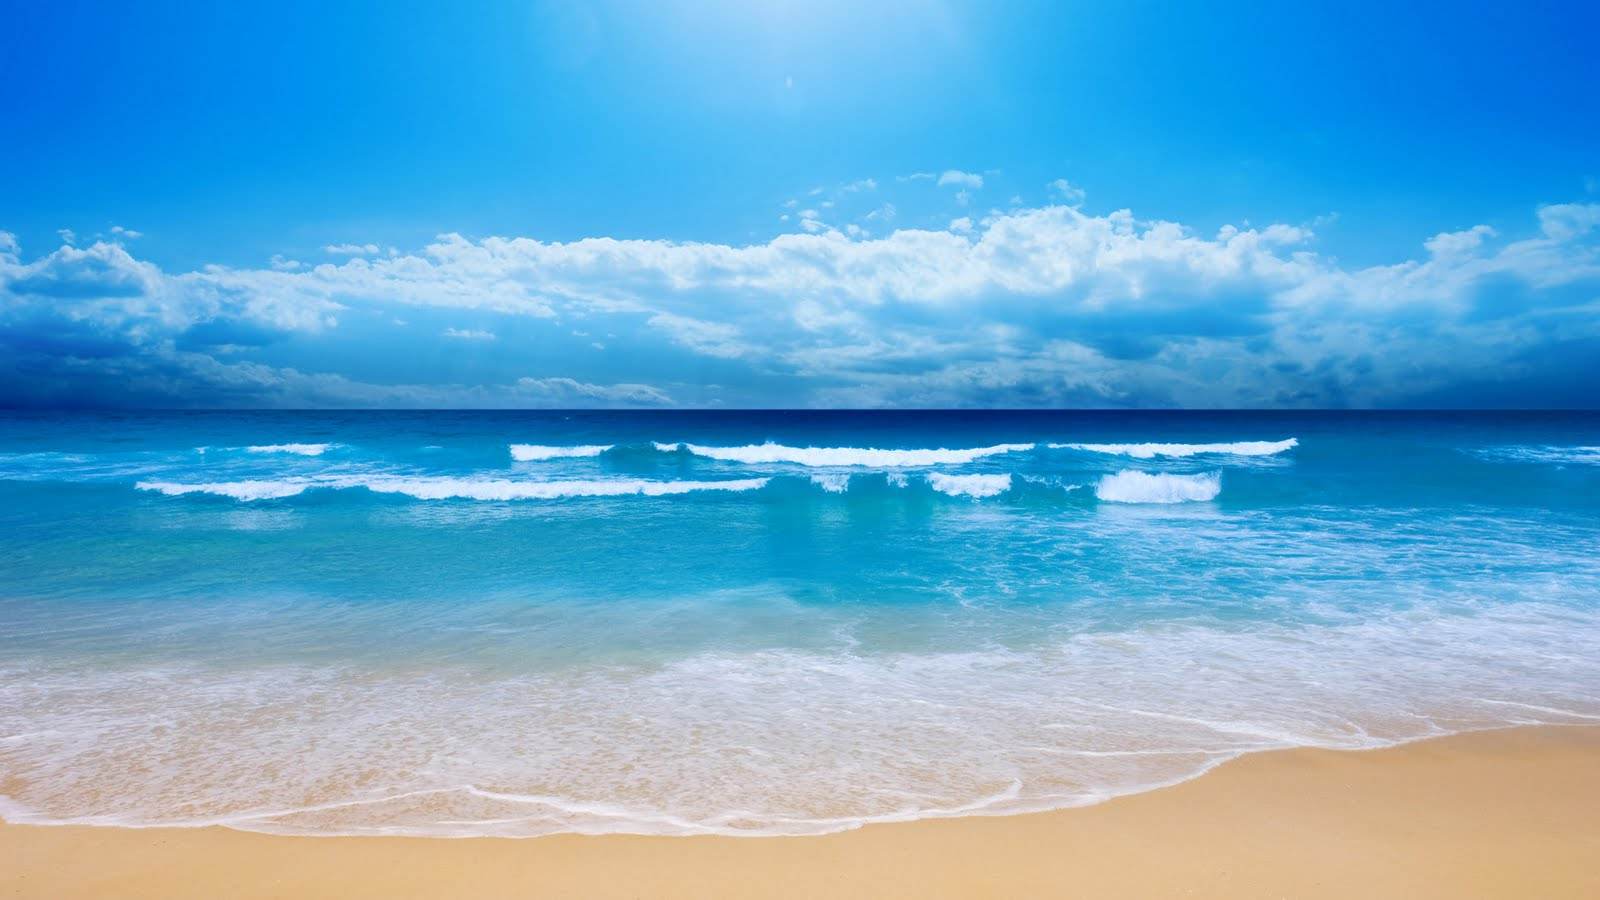 http://3.bp.blogspot.com/-dSe4CecRAts/TaHS627VqKI/AAAAAAAACWQ/czsAX2aUkxk/s1600/1920x1080-Blue-Waves-Beach-Wallpaper1080p-HD.jpg